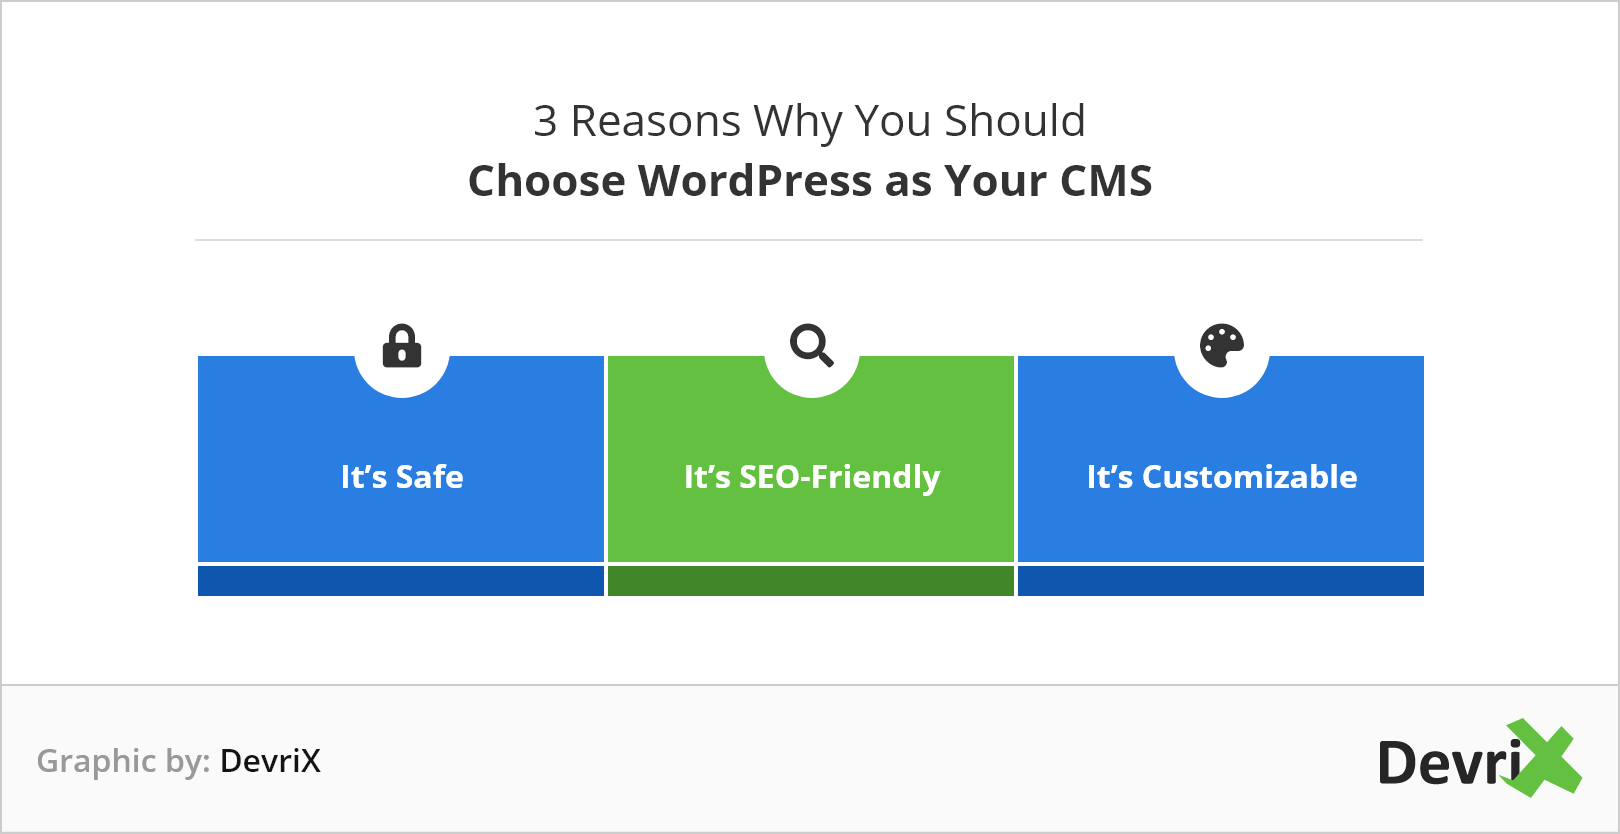 The three reasons why you should choose WordPress as an enterprise CMS